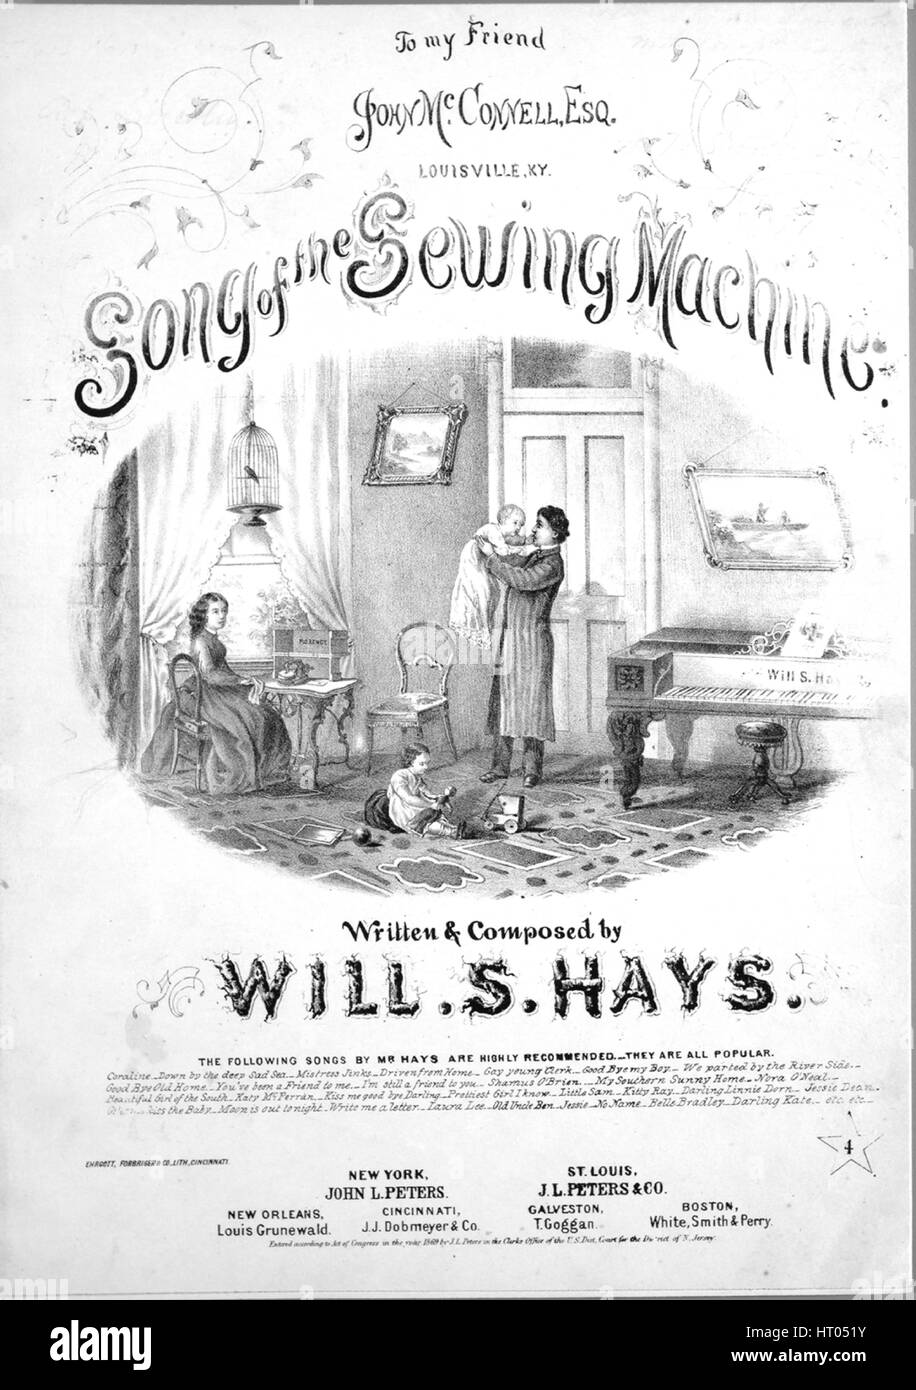 Sheet music cover image of the song 'Song of the Sewing Machine